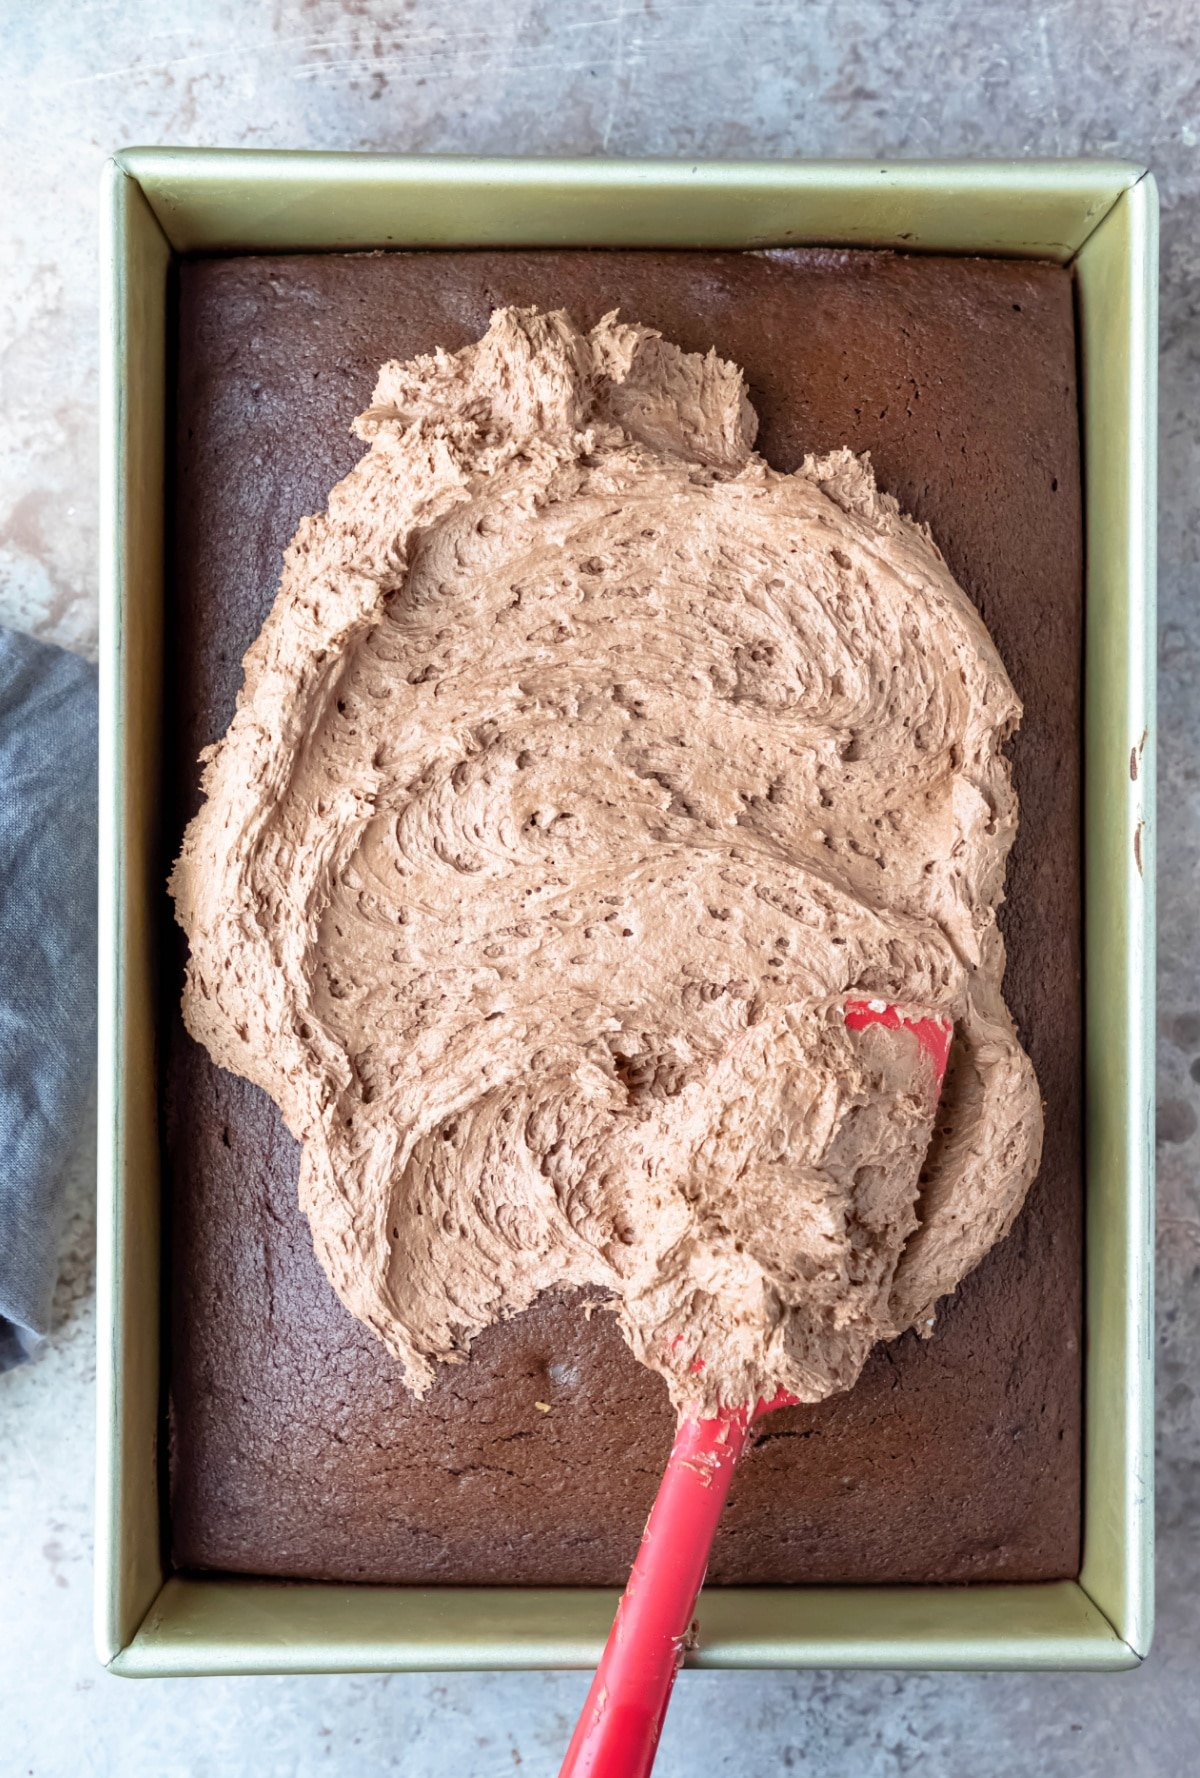 Red spatula spreading chocolate frosting on a cake